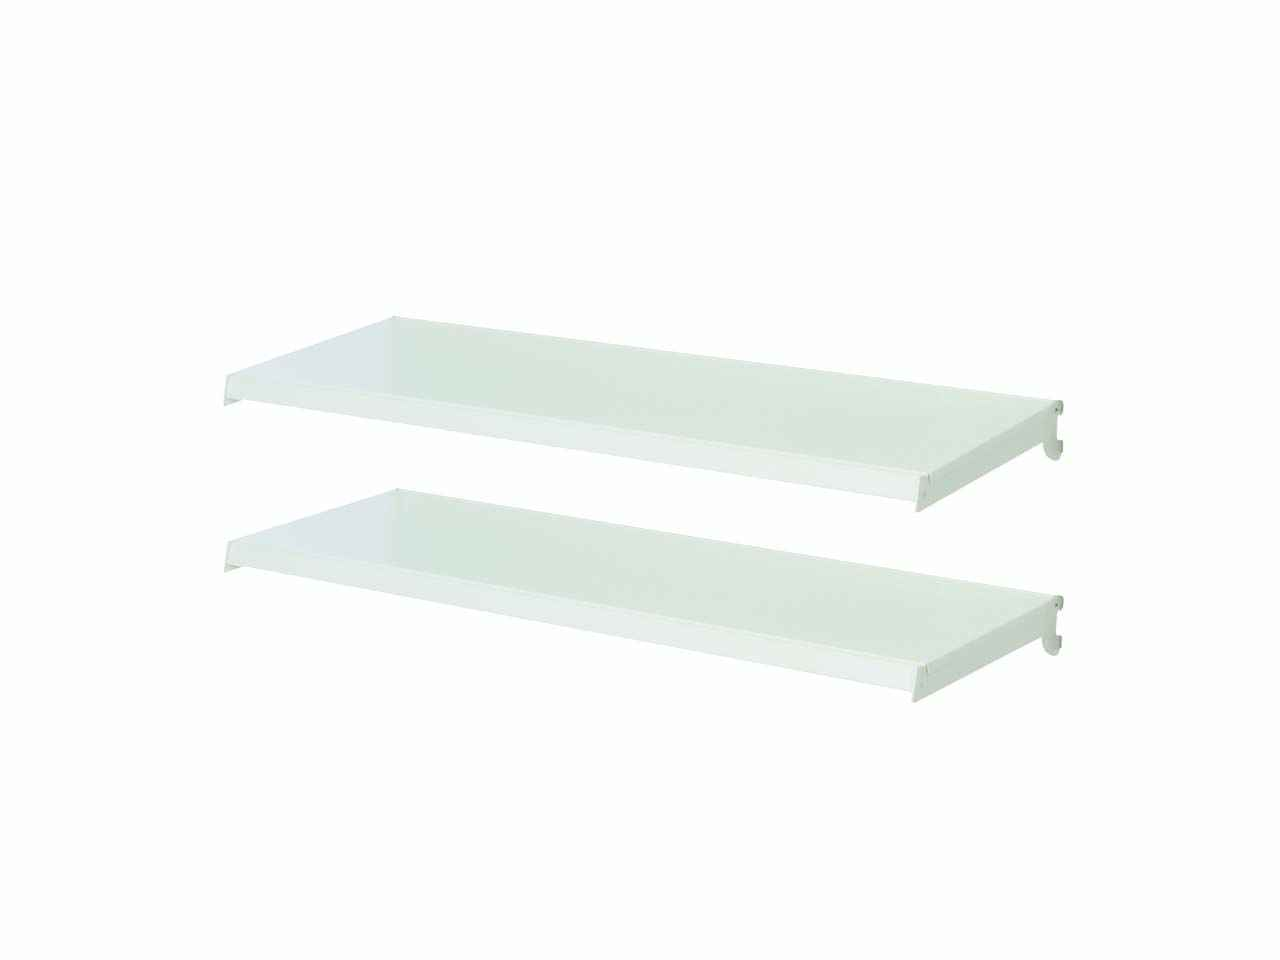 Silverline 788204 2 Metal Shelves 4 Brackets 370mm Slatwall Toolbars Gondola Systems